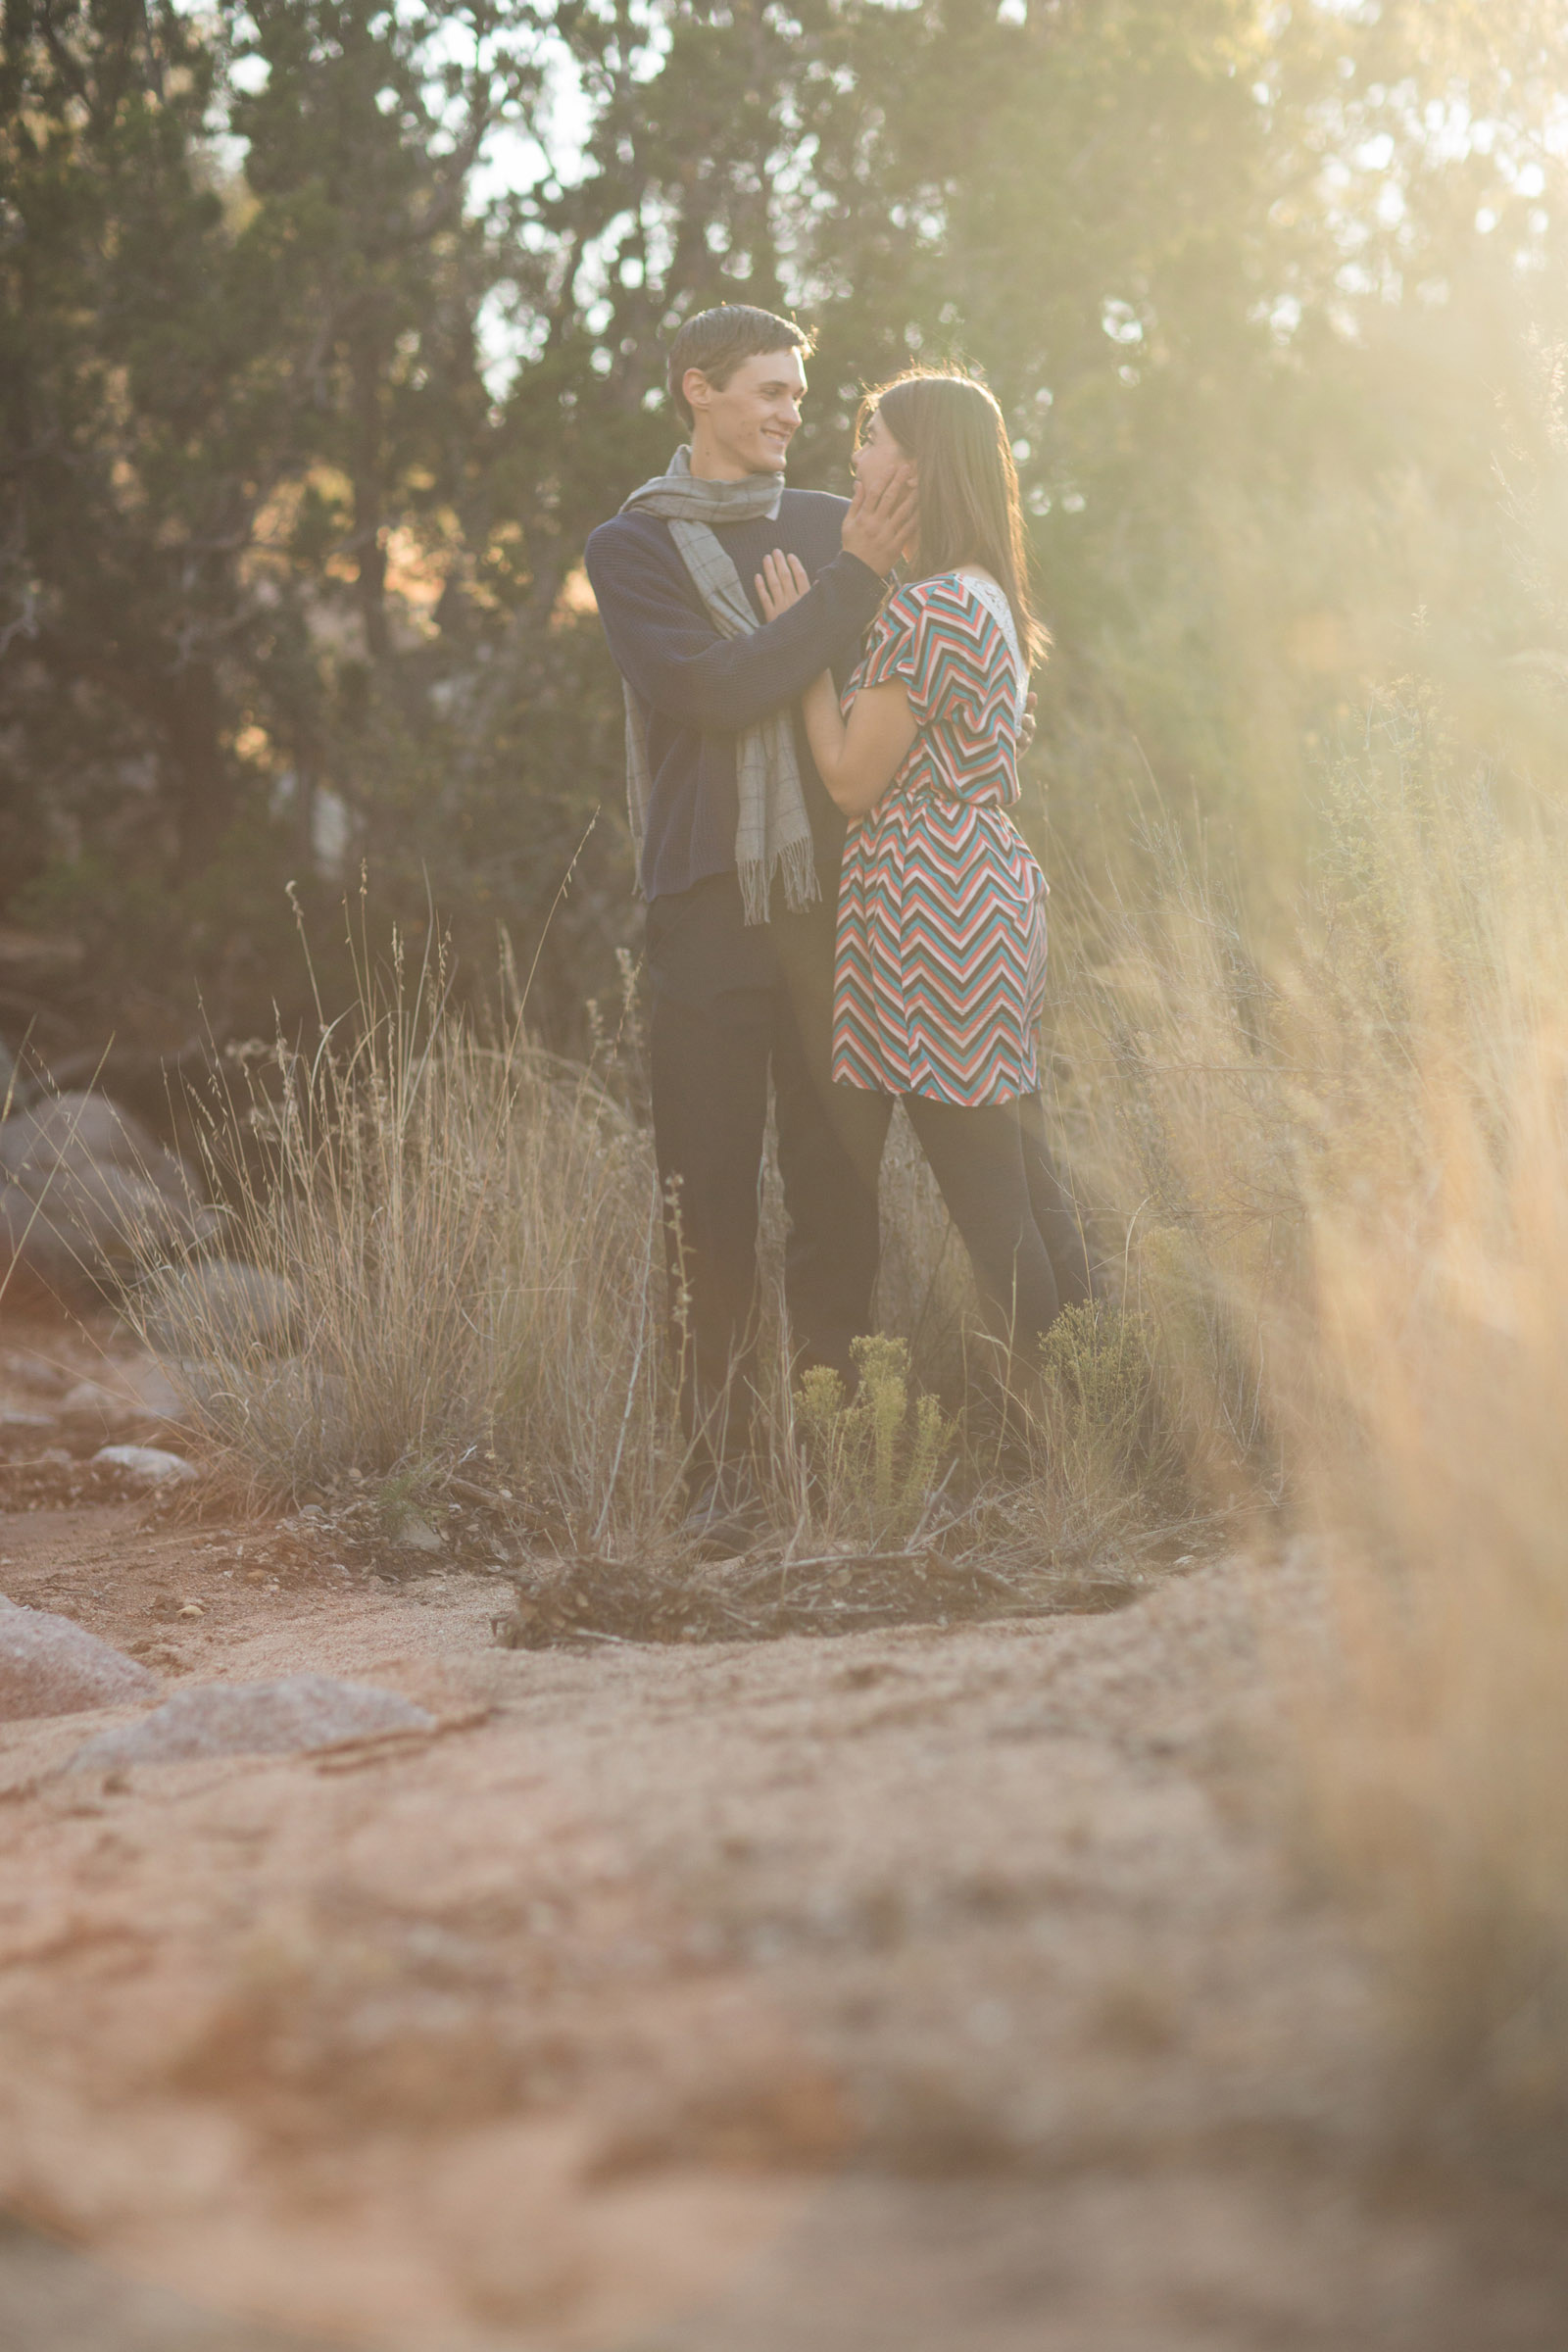 026-engagment-photographer-in-alb-nm-desert-mirabal-photography